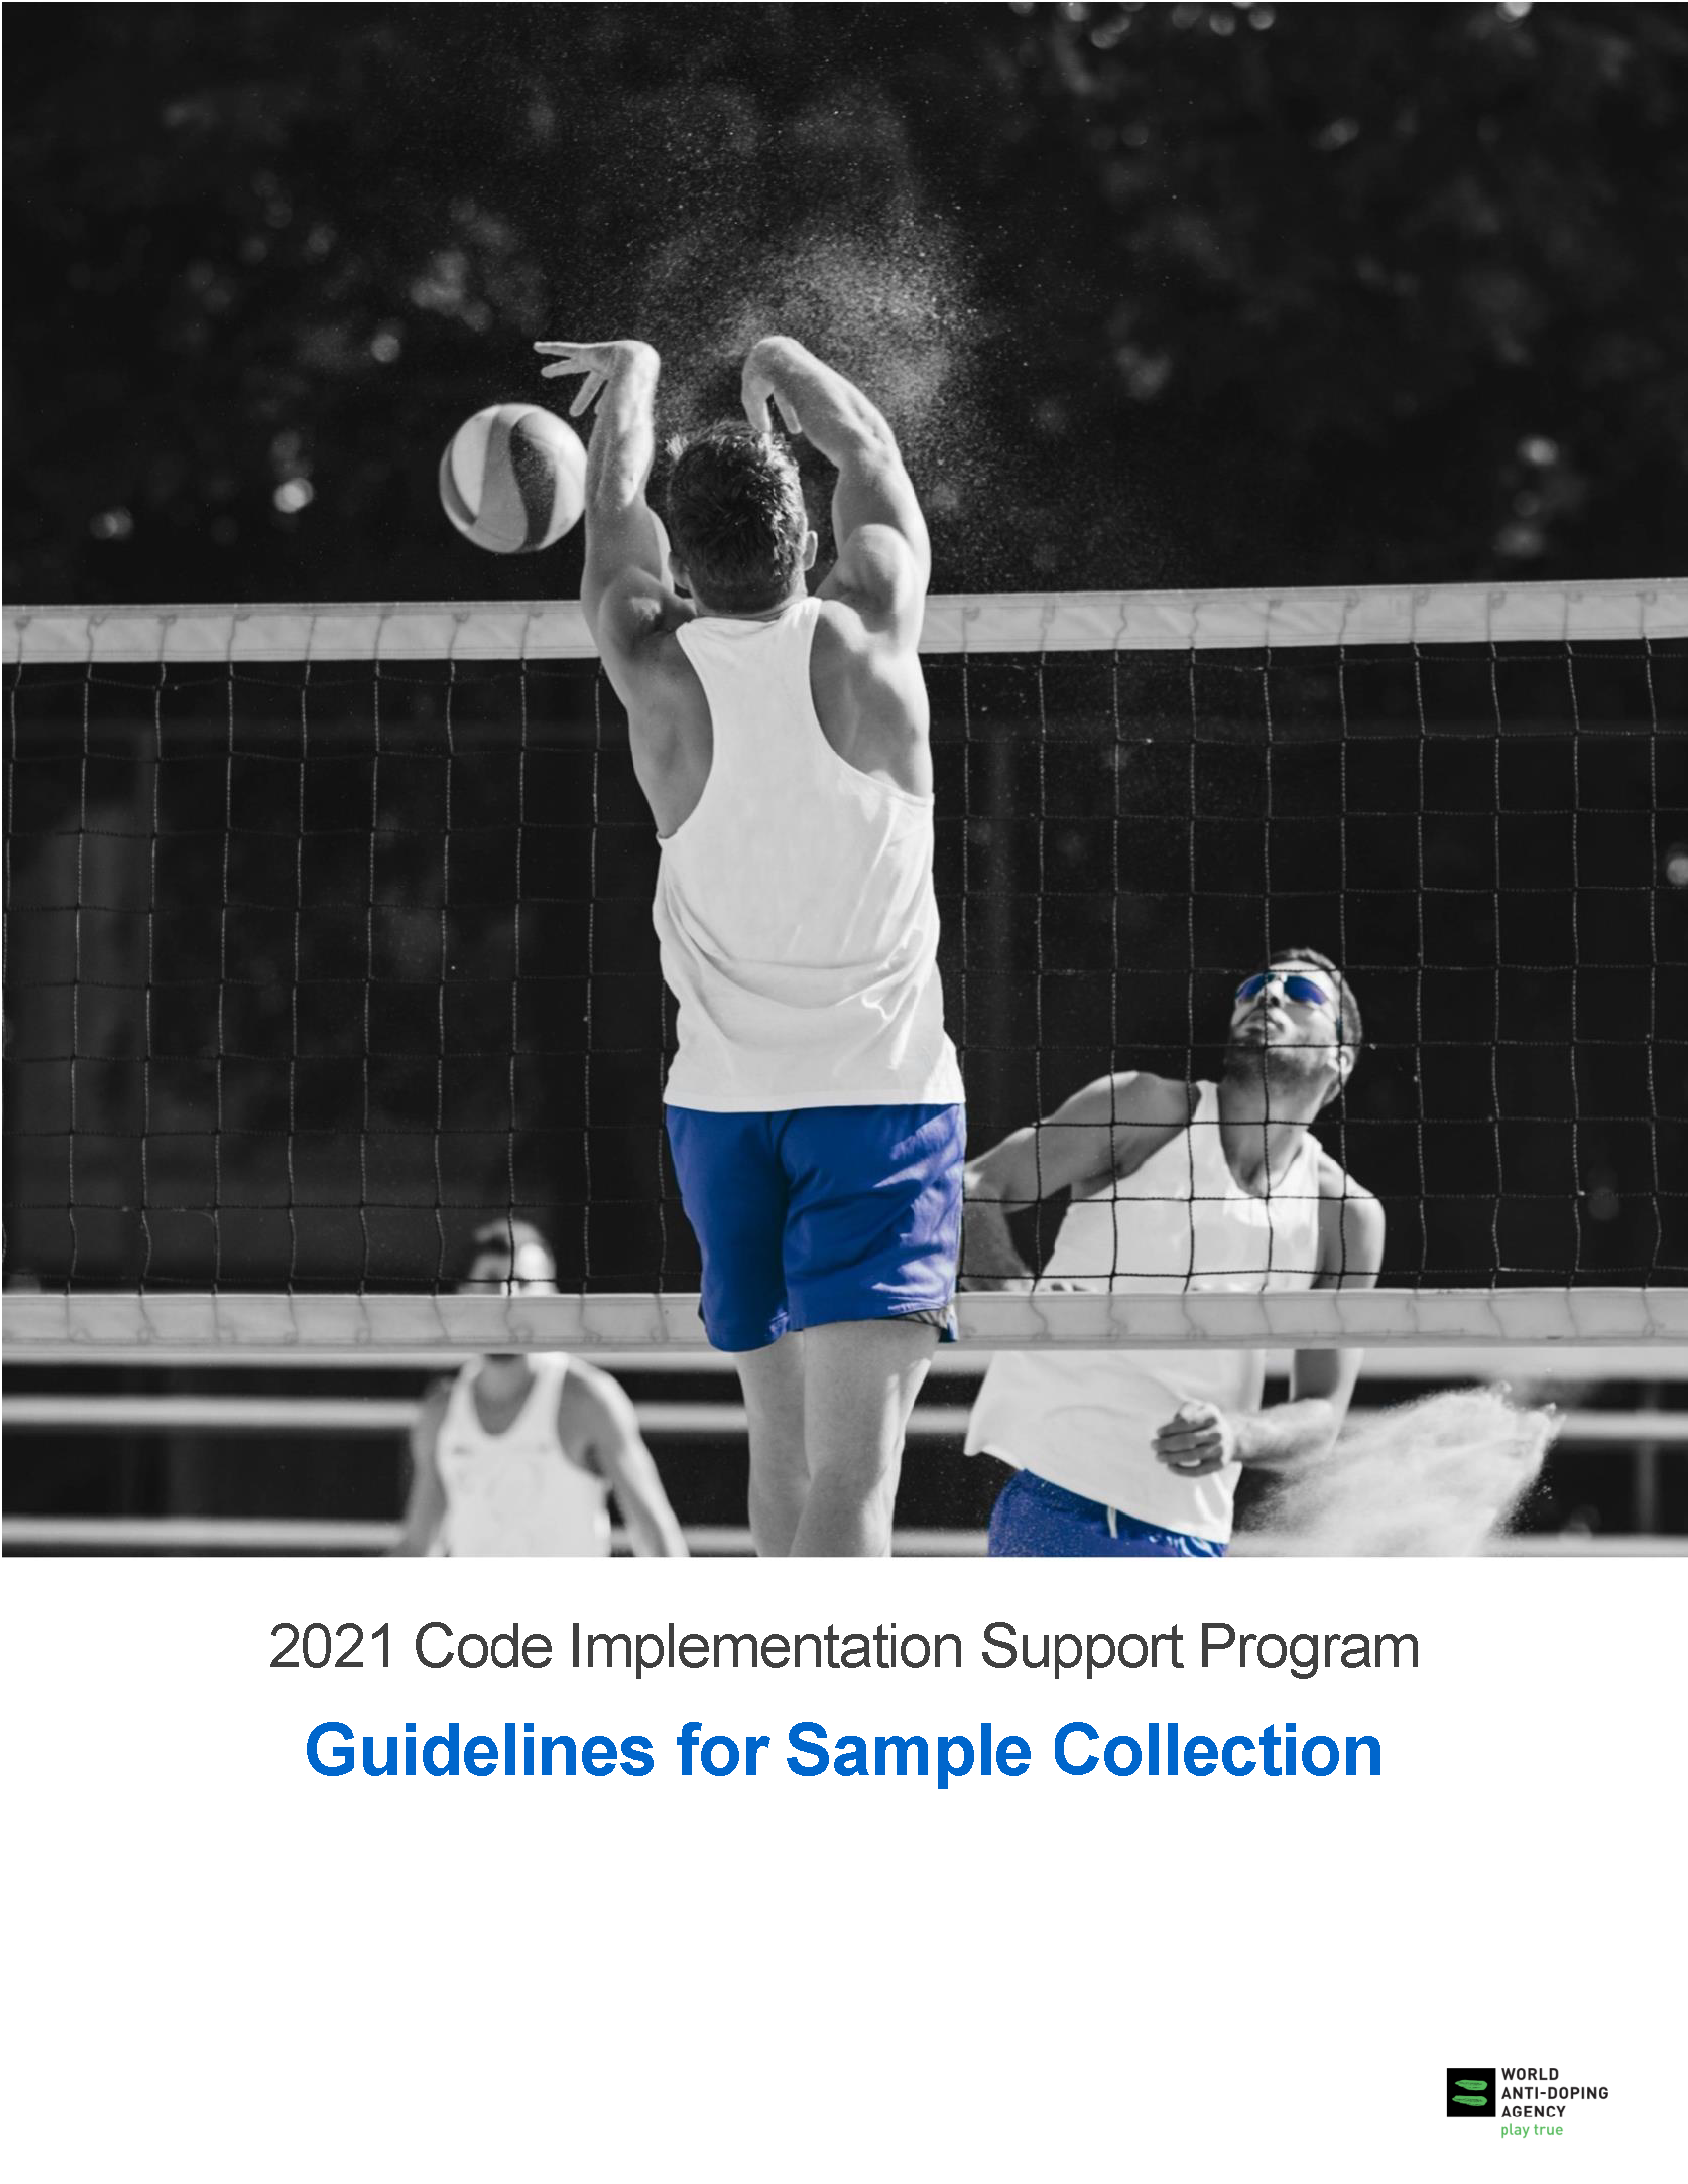 Guidelines for Sample Collection